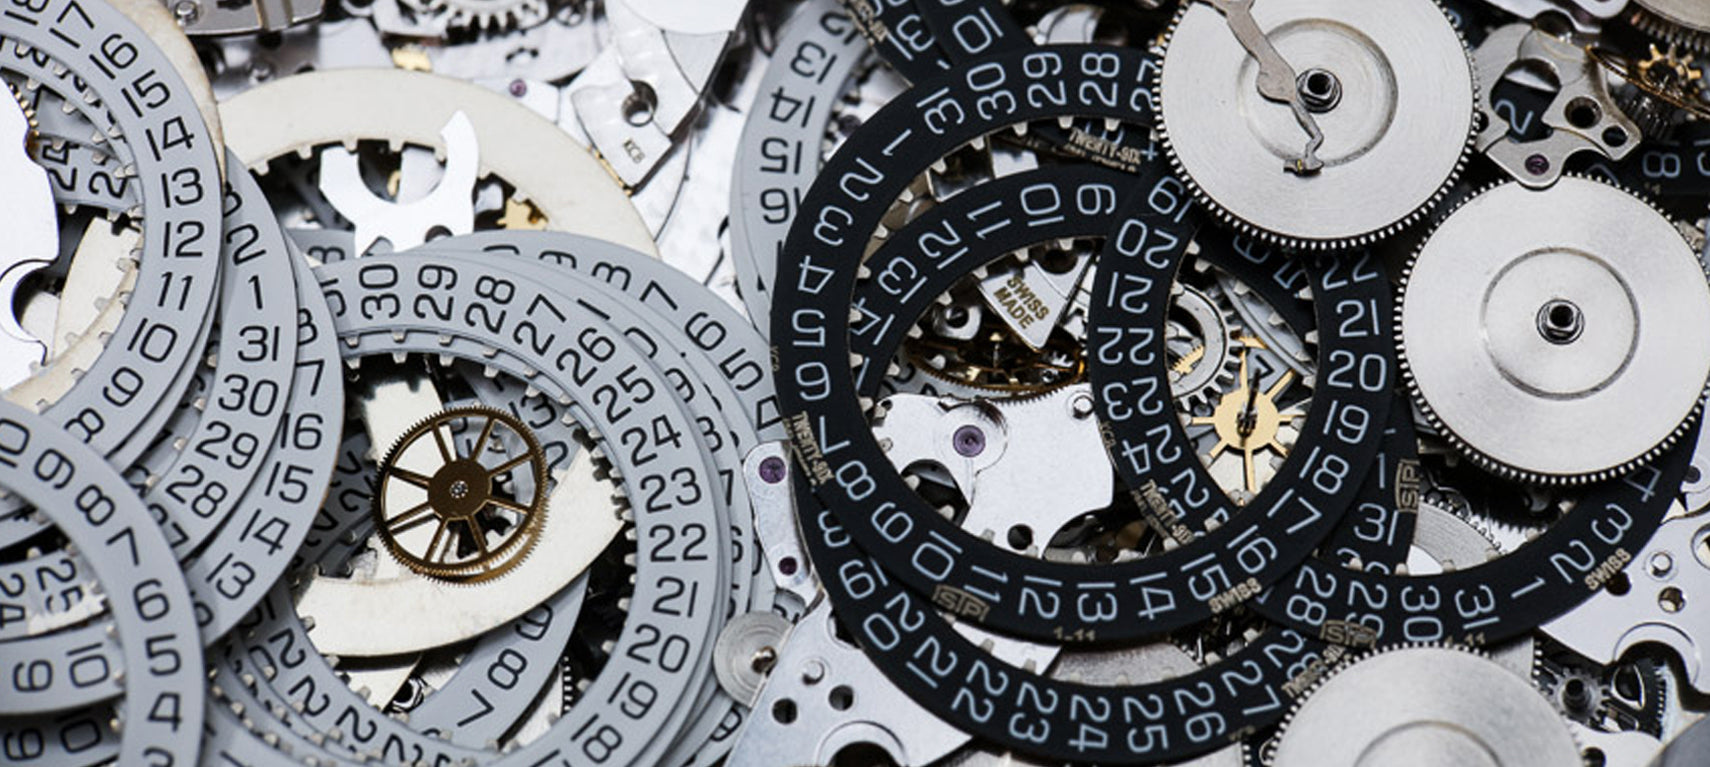 Tribus-Watches-History-Blog-3